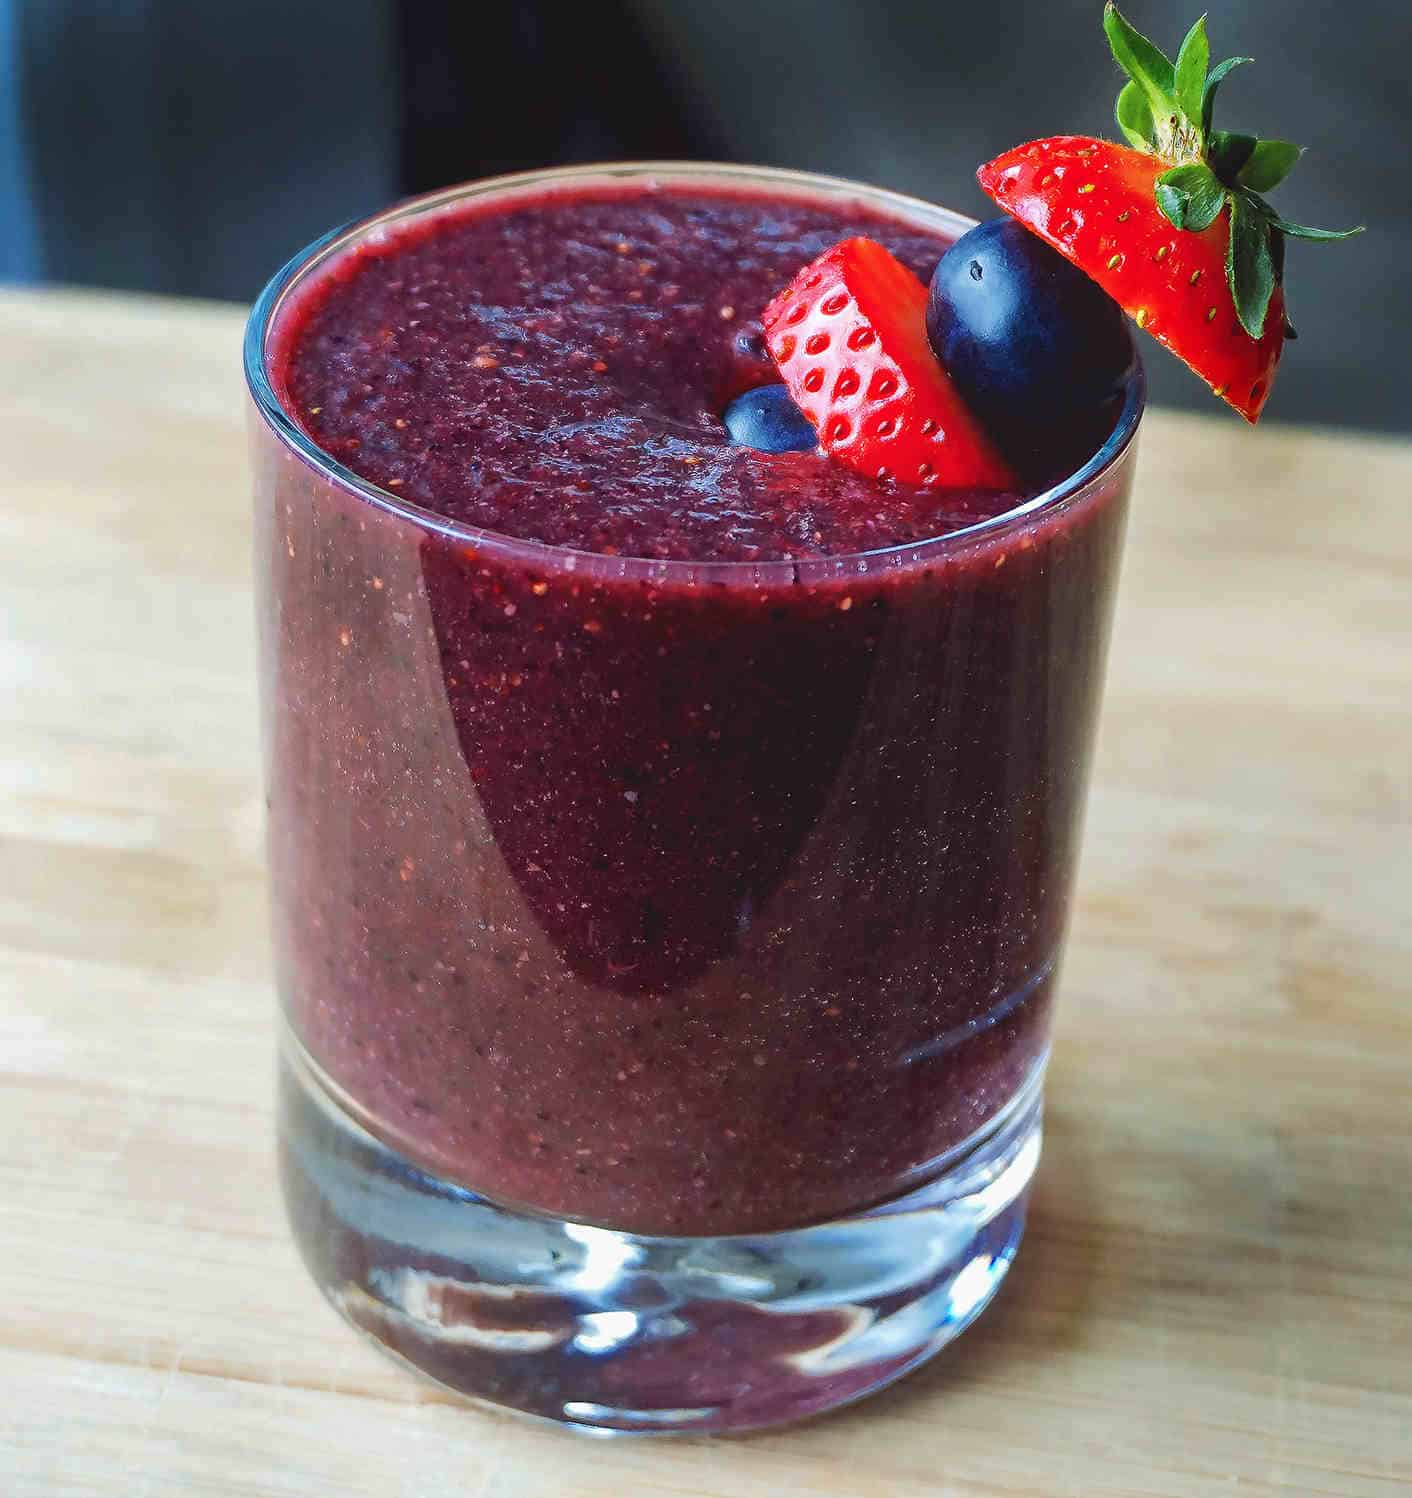 Dairy Free Smoothie Recipe With Berries and Peach